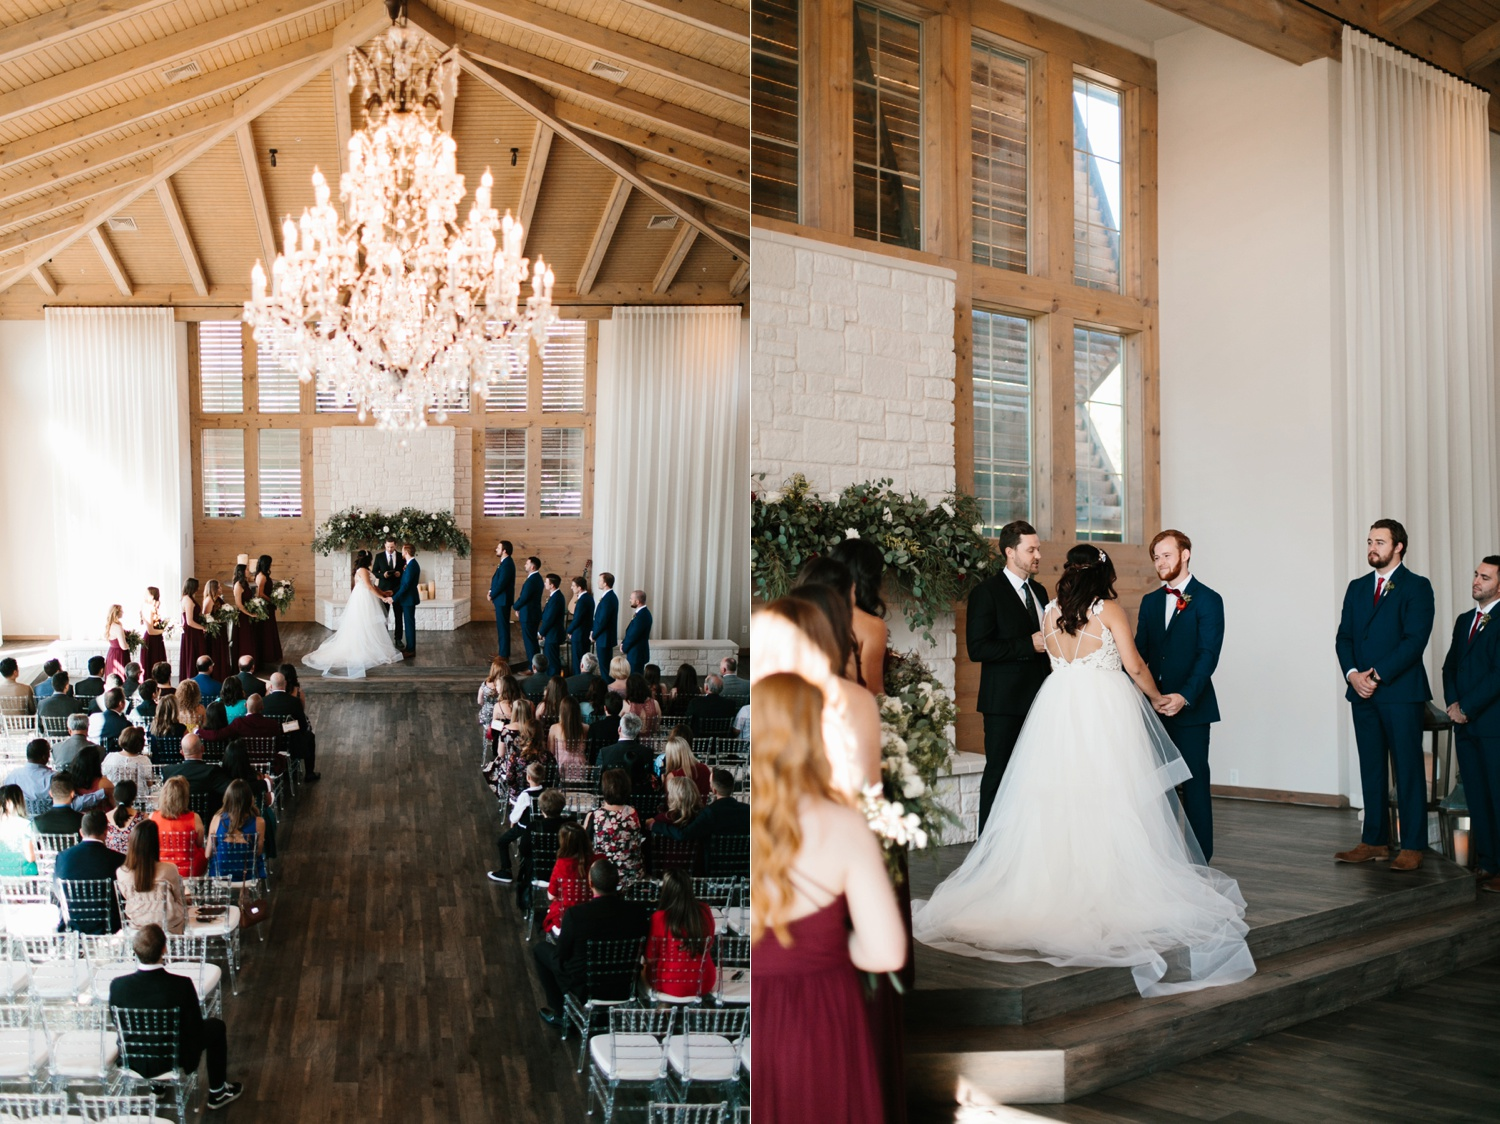 Grant + Lysette | a vibrant, deep burgundy and navy, and mixed metals wedding at Hidden Pines Chapel by North Texas Wedding Photographer Rachel Meagan Photography 084